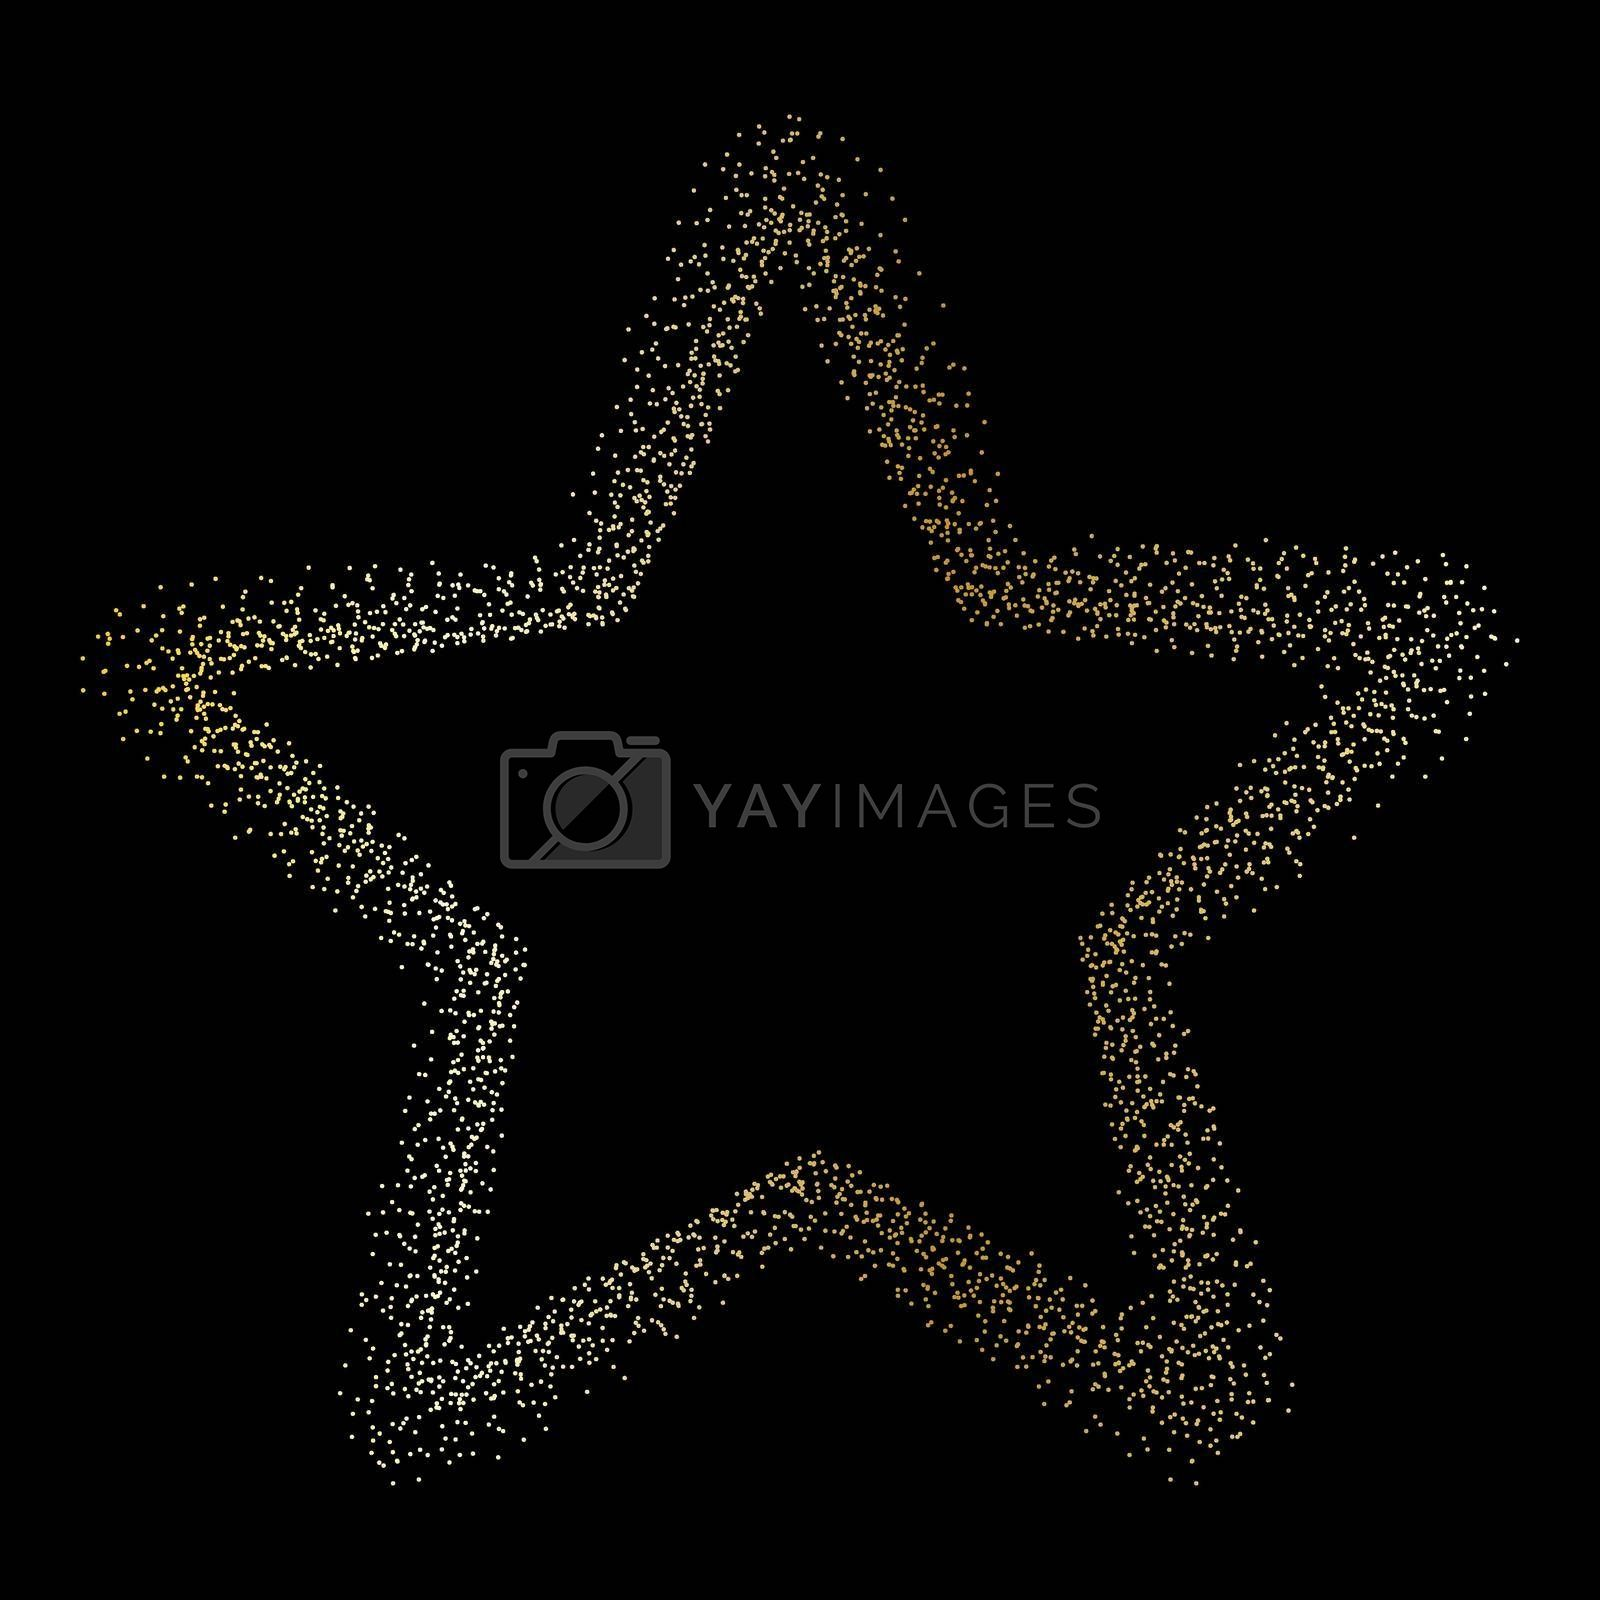 star of golden dust on a black background. Flat style.